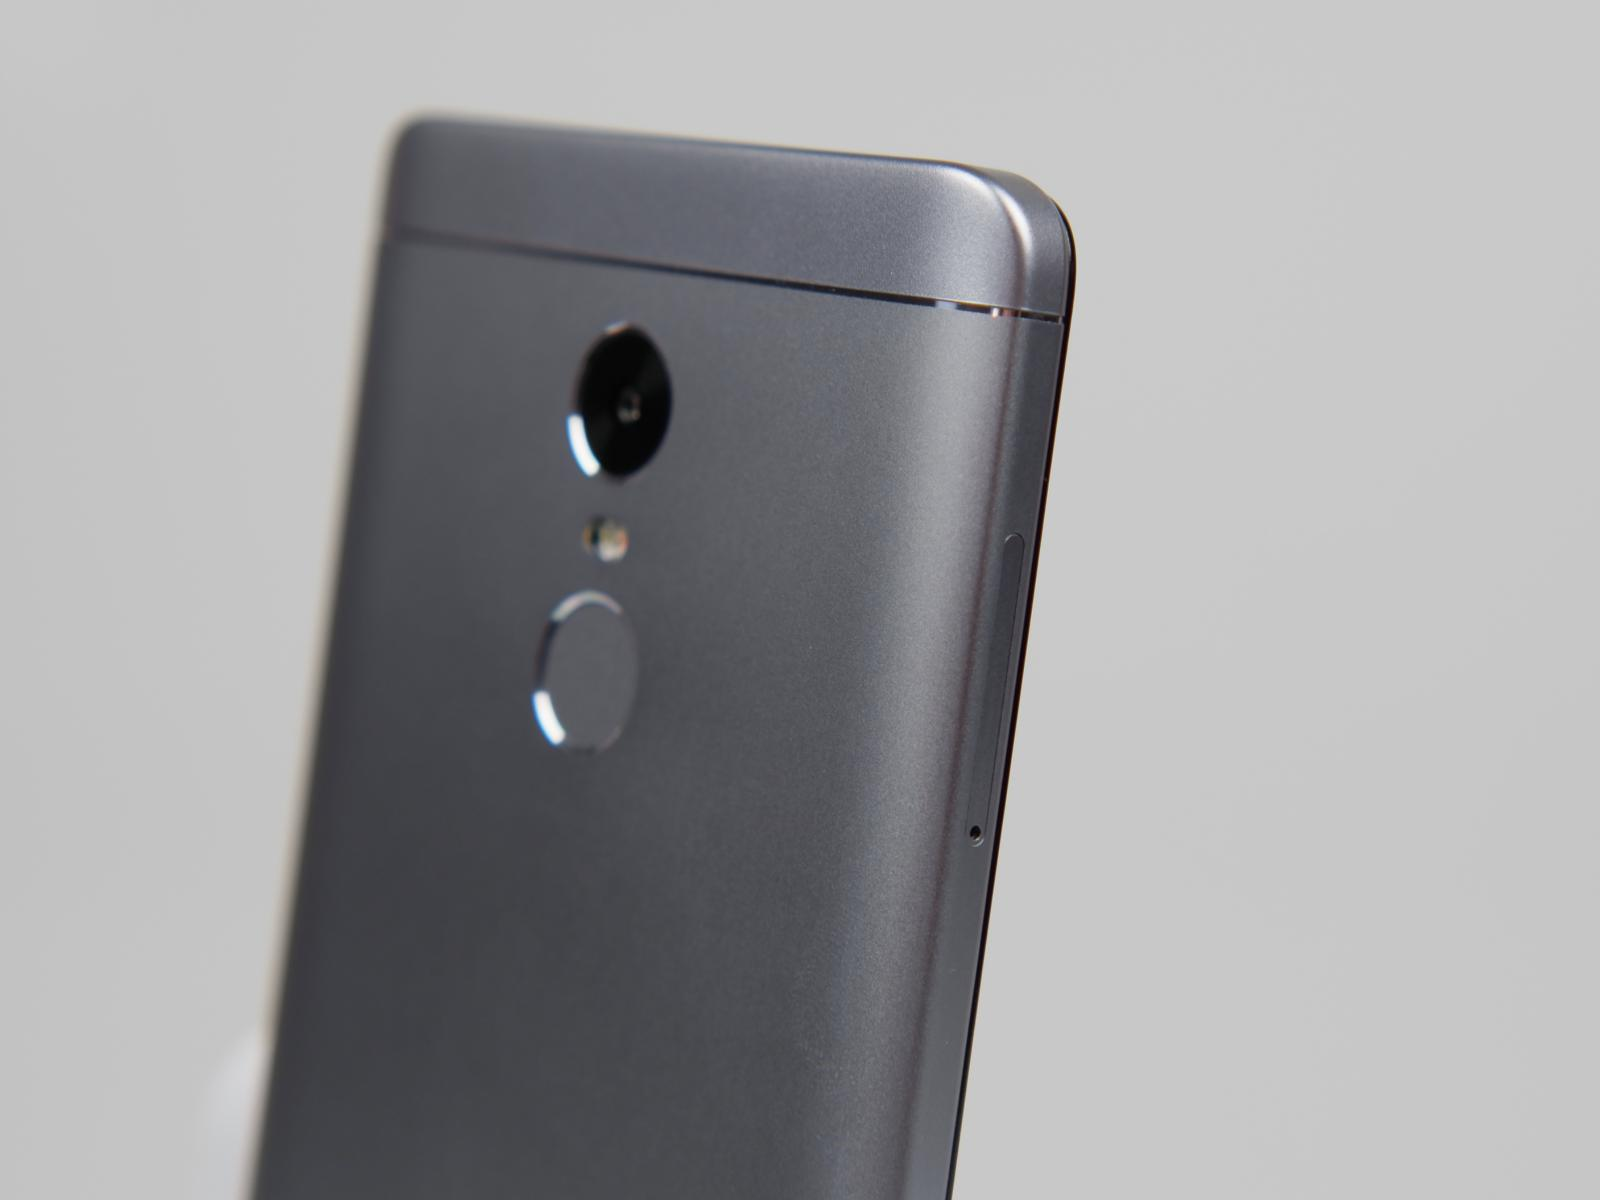 Xiaomi Redmi Note 4X International Review The new Champion